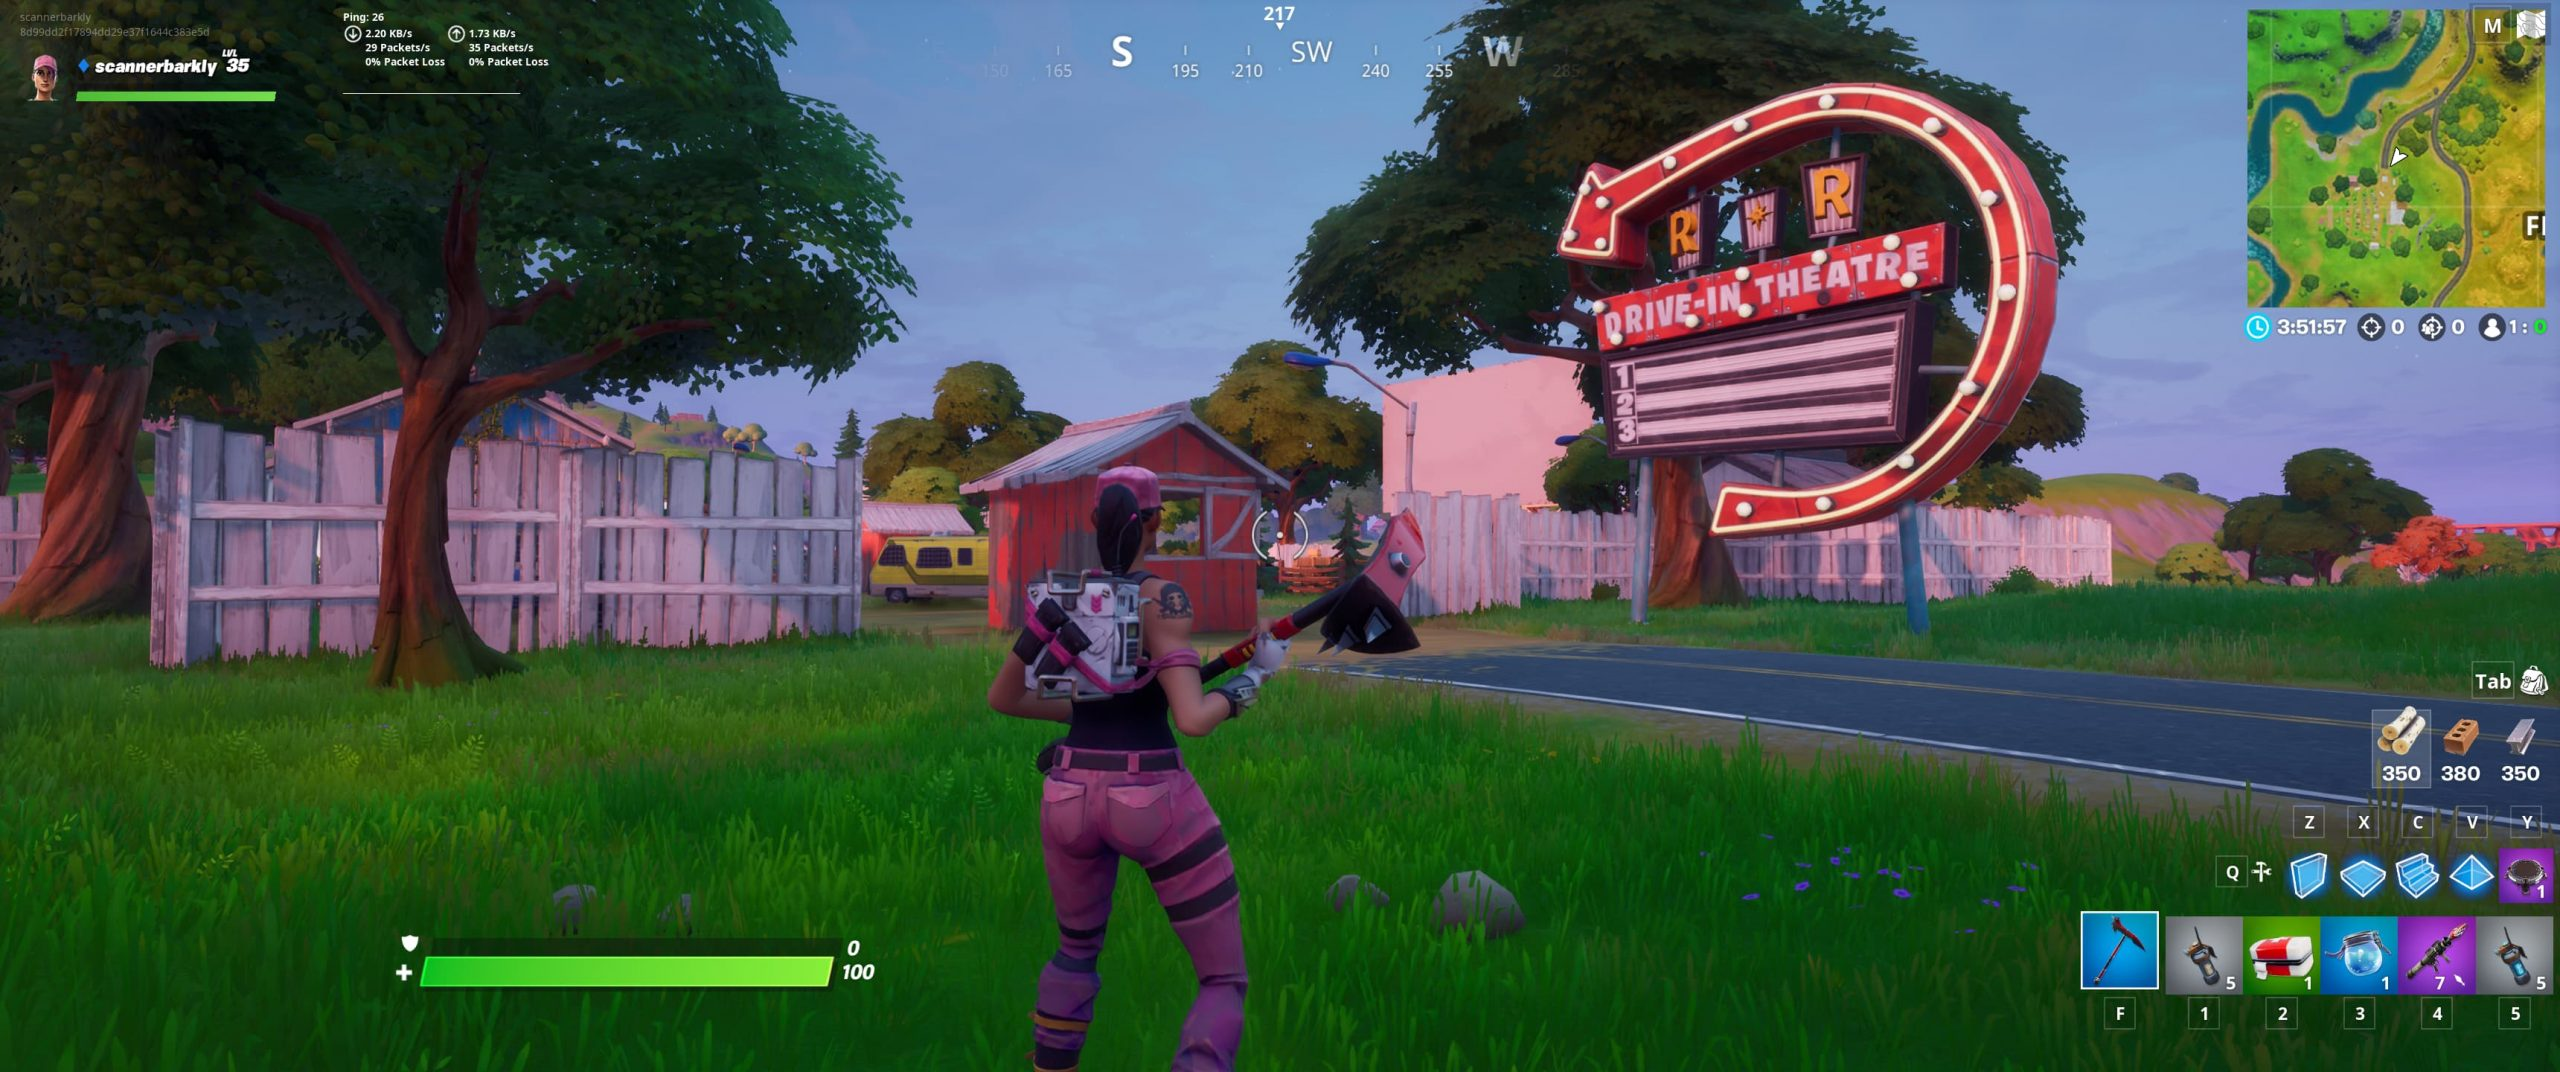 Where to find Grumpy Greens, Mowdown, and Risky Reels in ...